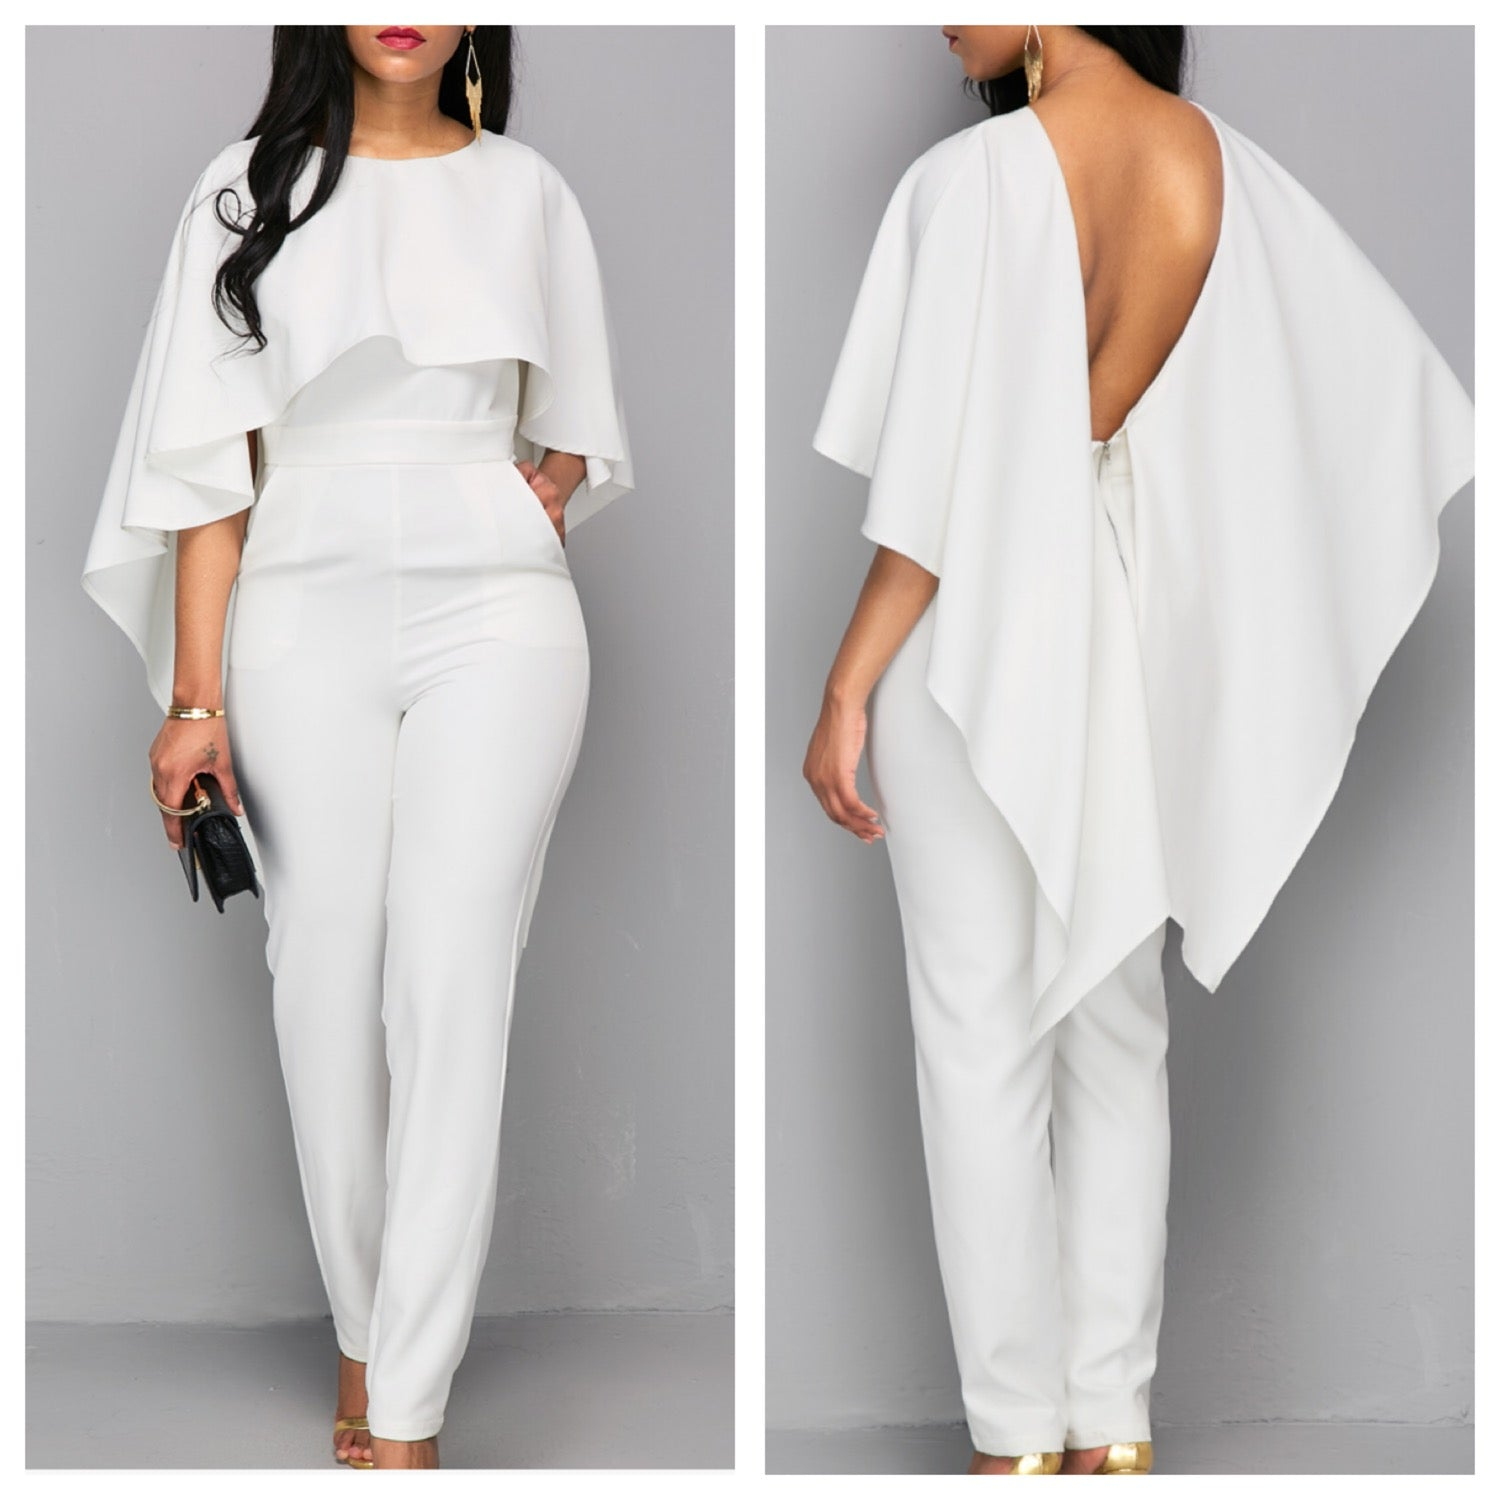 The DRAPED JUMPSUIT